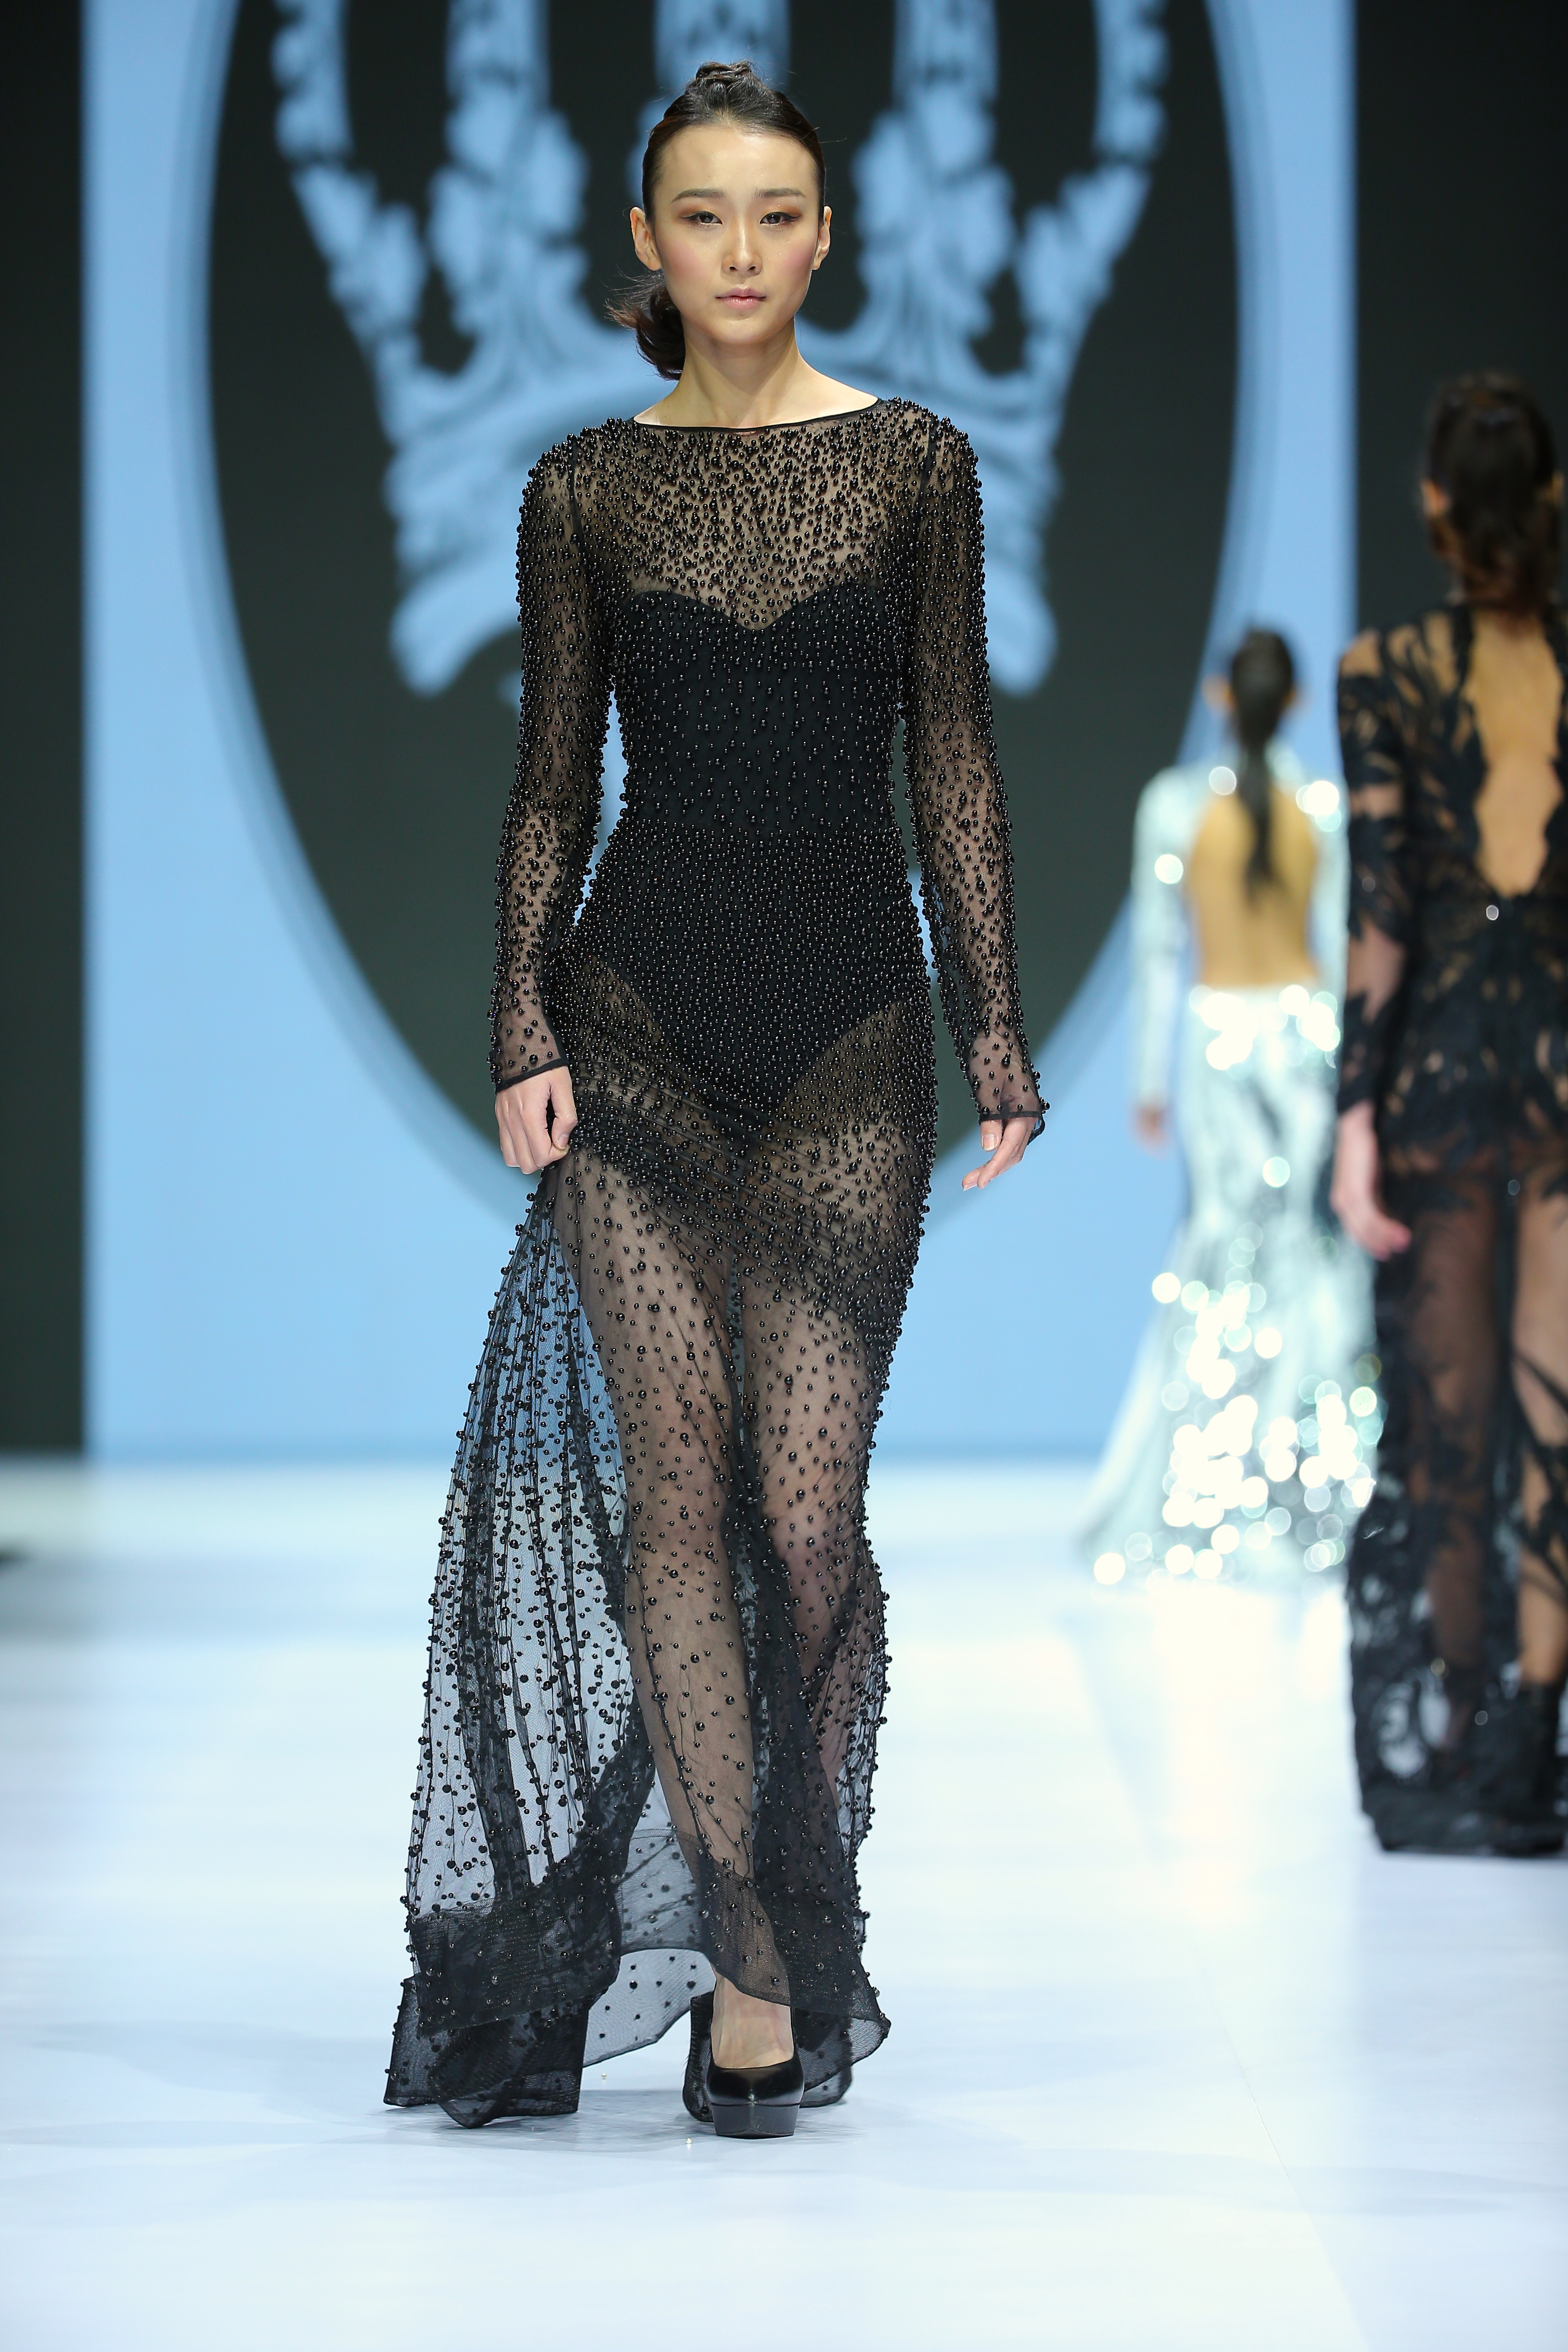 A model wears a design by Willfredo Gerardo at the Mercedes-Benz Fashio Week - CHINA